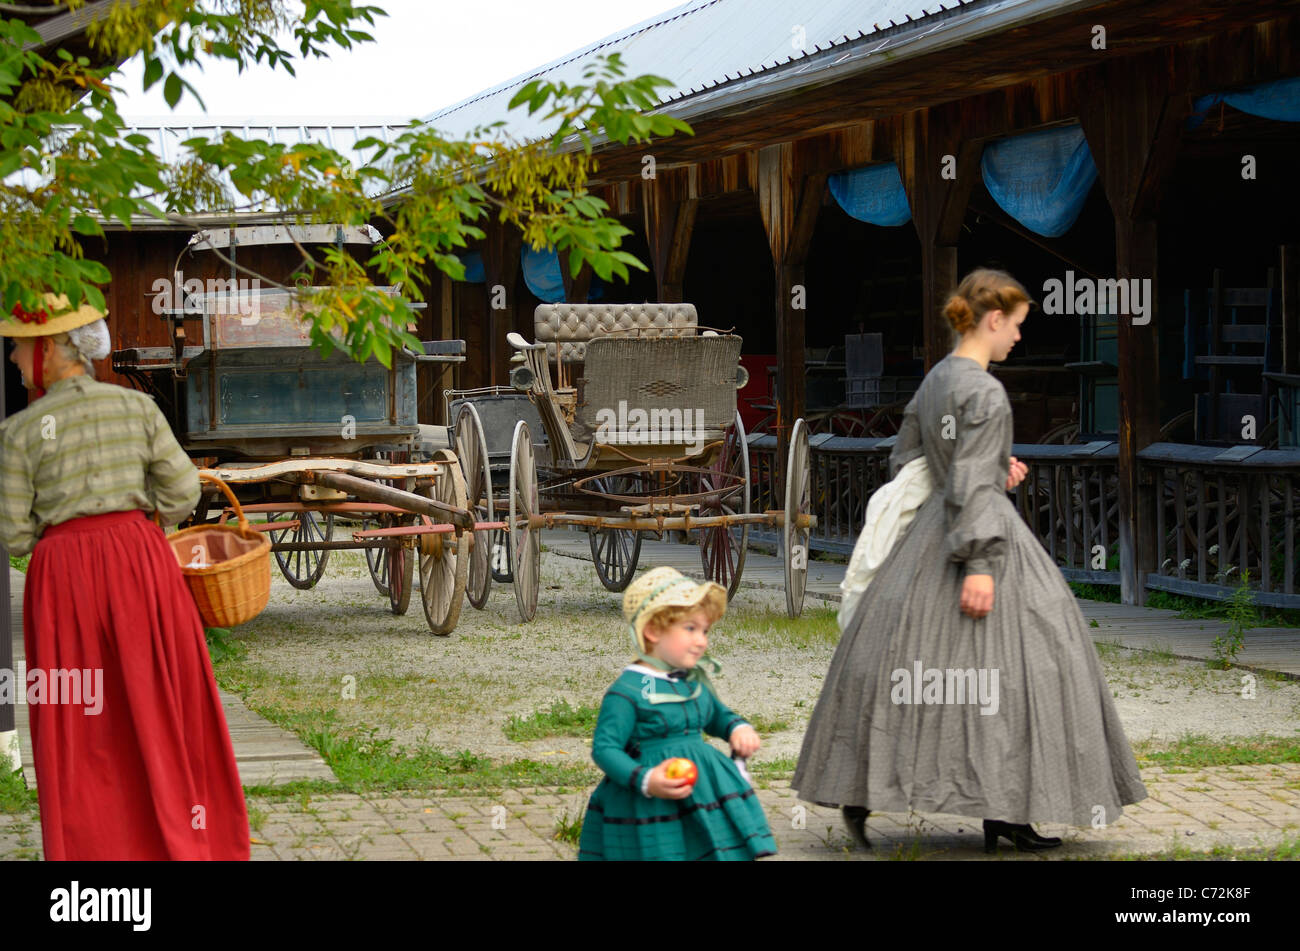 Three generations of women in period costumes at garage with carriages Country Heritage Park Milton Ontario - Stock Image